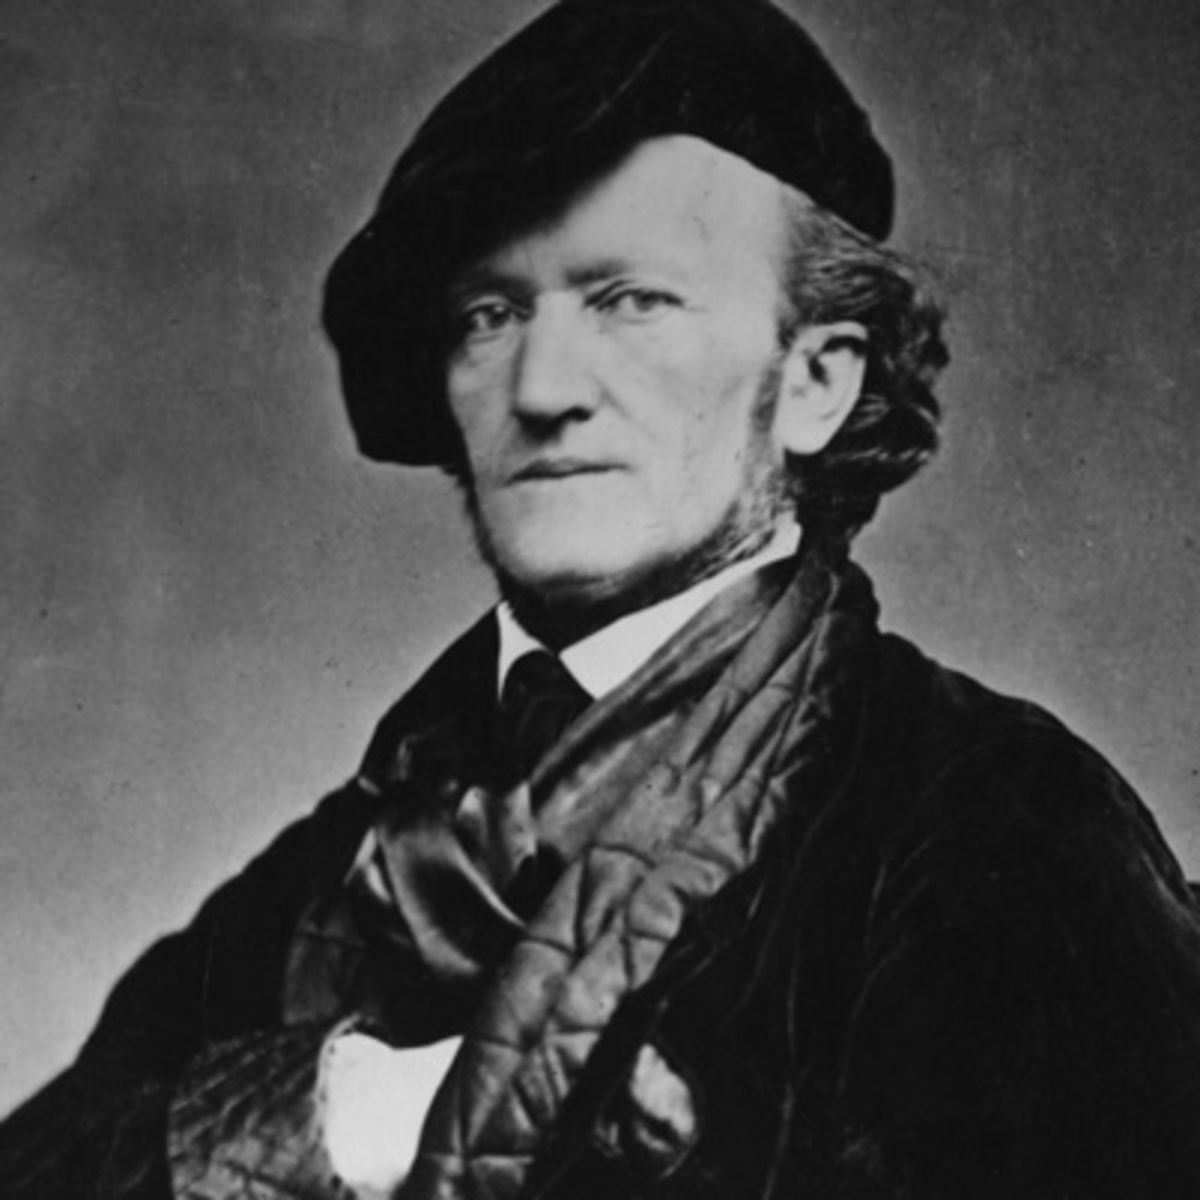 richard wagners anti semitism wagner1813 1883 essay Yes richard wagner was very proud of his anti-semitism some quotes of his to this effect include: it is necessary for us to explain the involuntary repugnance we possess for the nature and .